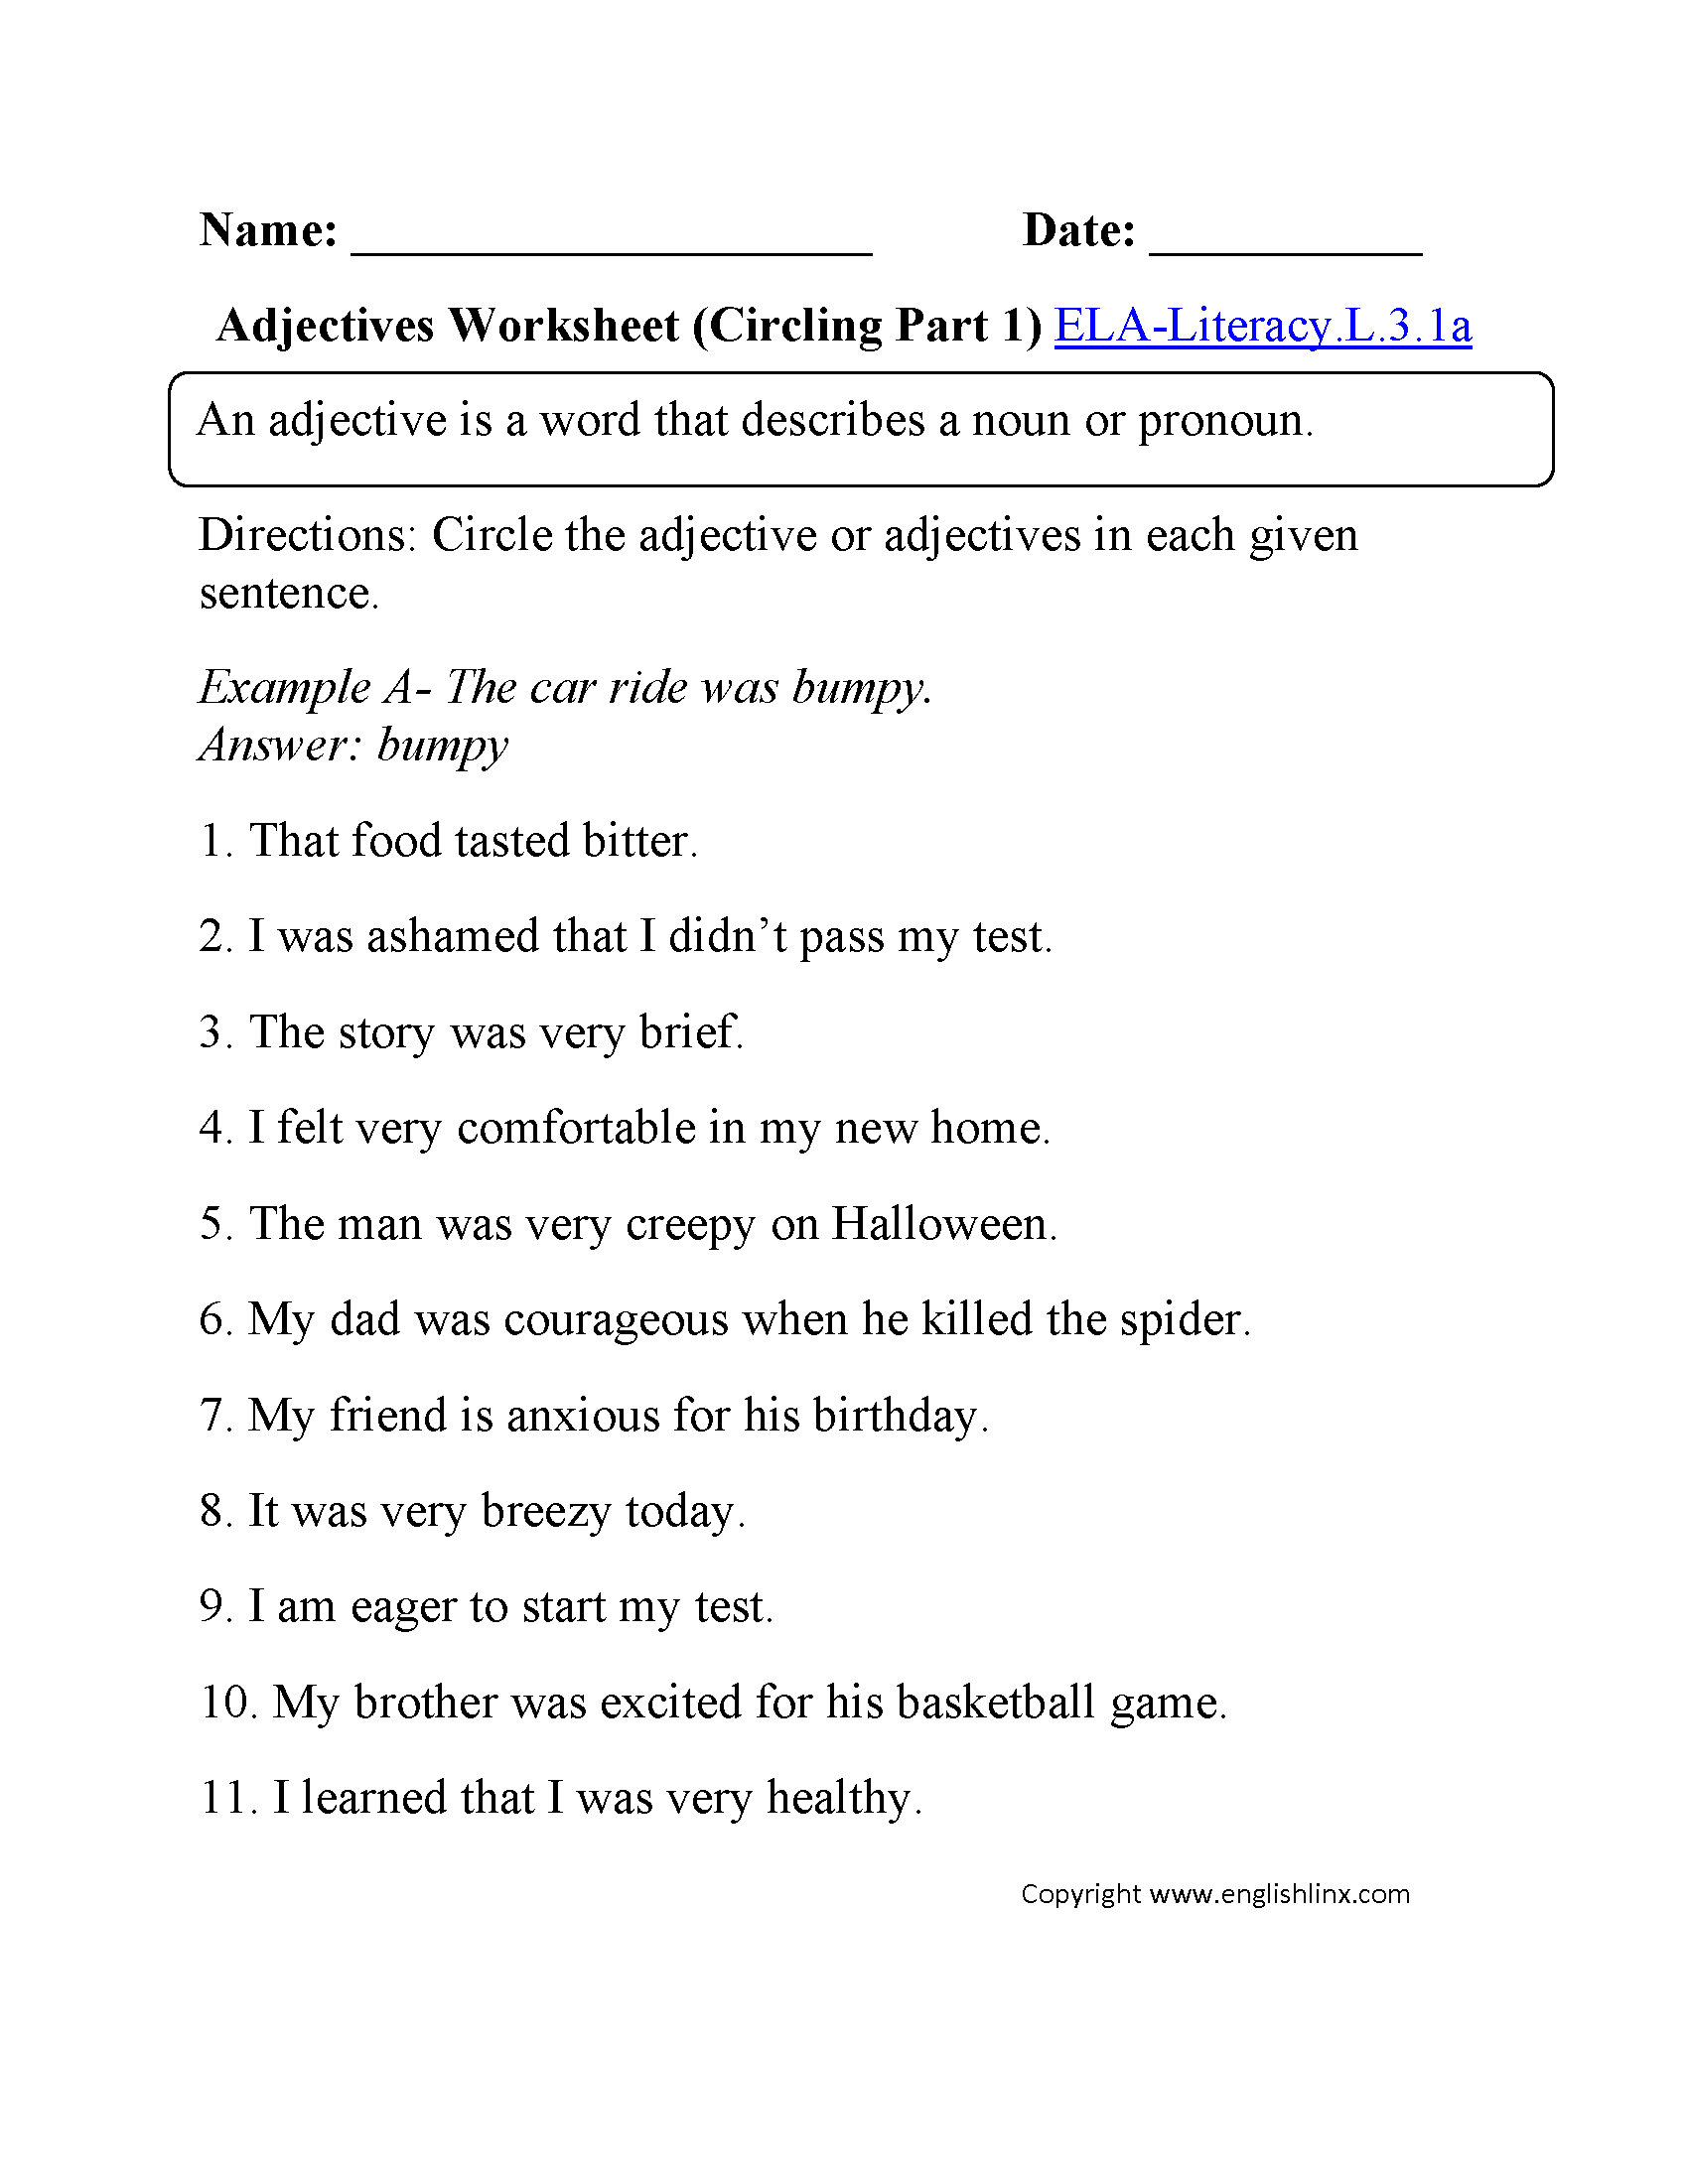 Worksheet Adjectives Worksheet For 3rd Grade 3rd grade common core language worksheets adjectives worksheet 1 ela literacy l 3 1a worksheet